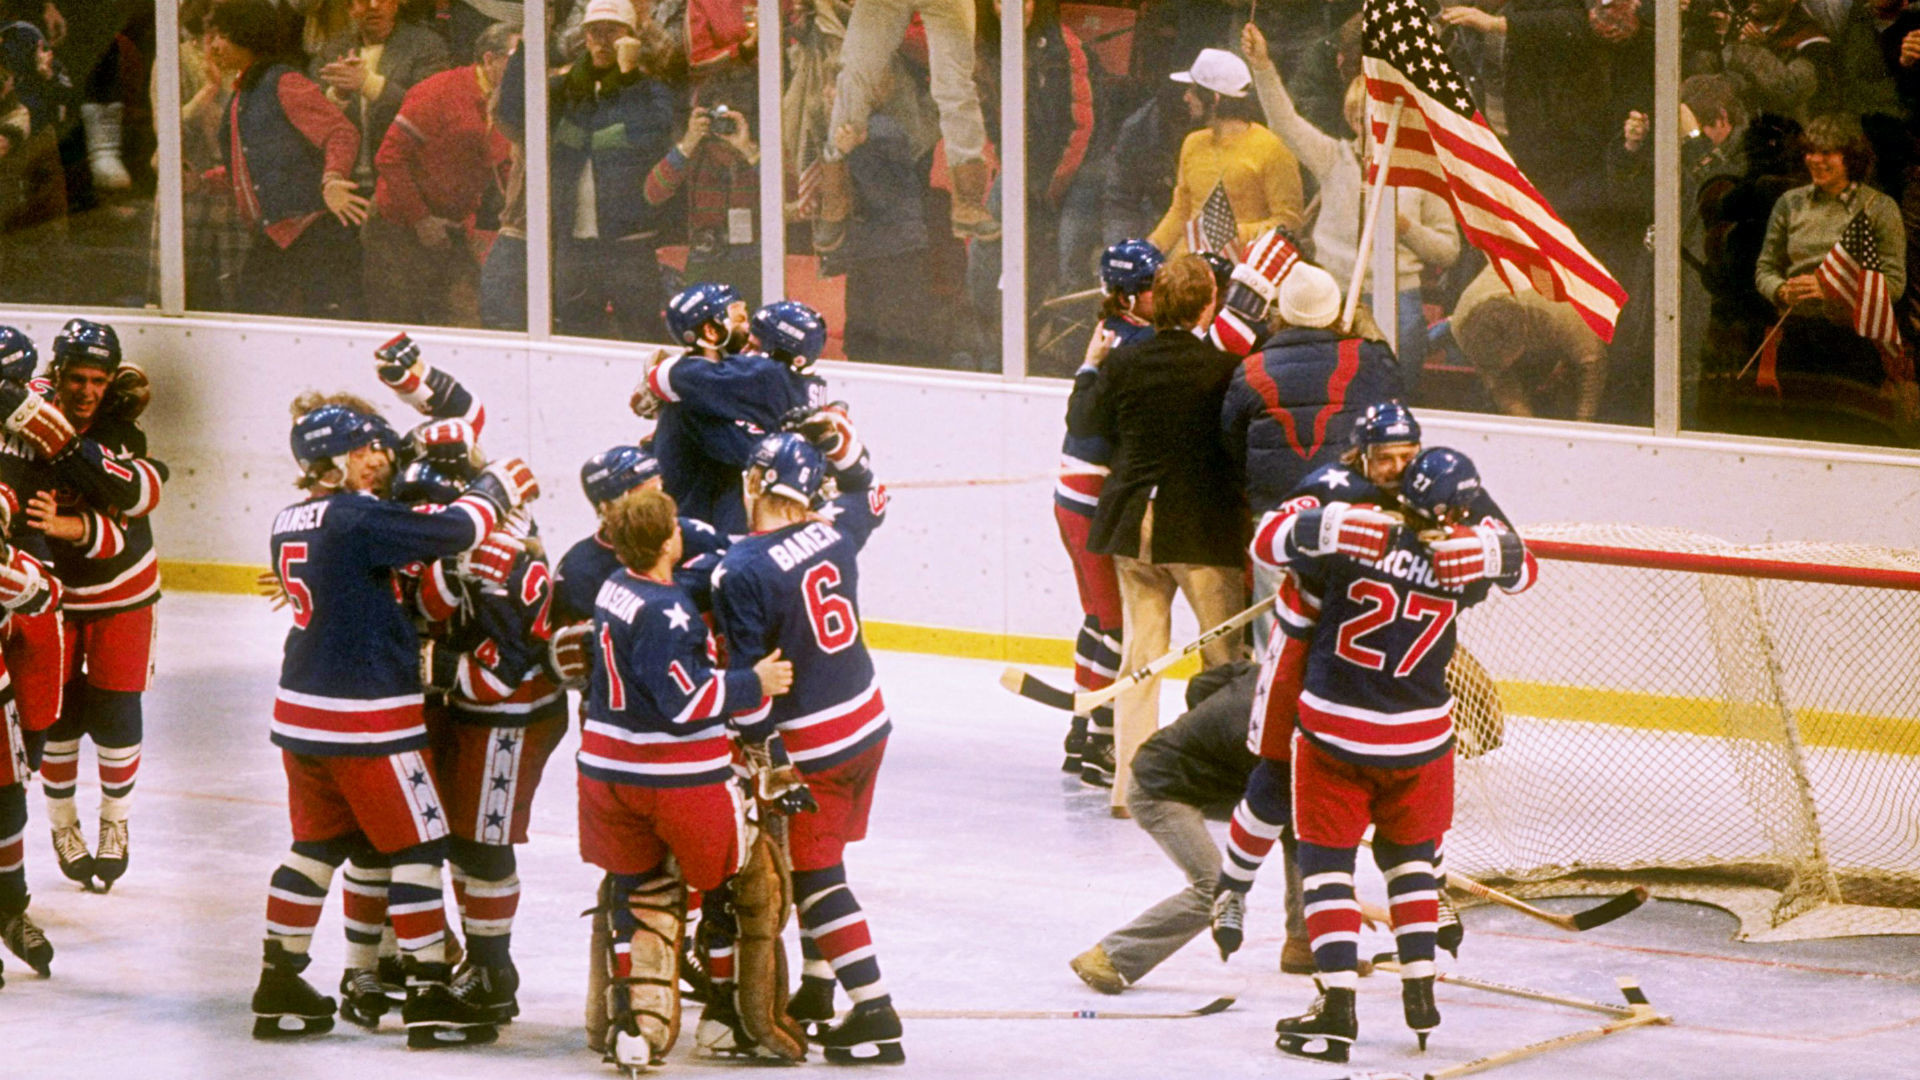 Res: 1920x1080, Had 1980 U.S. hockey team lost to Finland, Soviets would have won gold   NHL    Sporting News